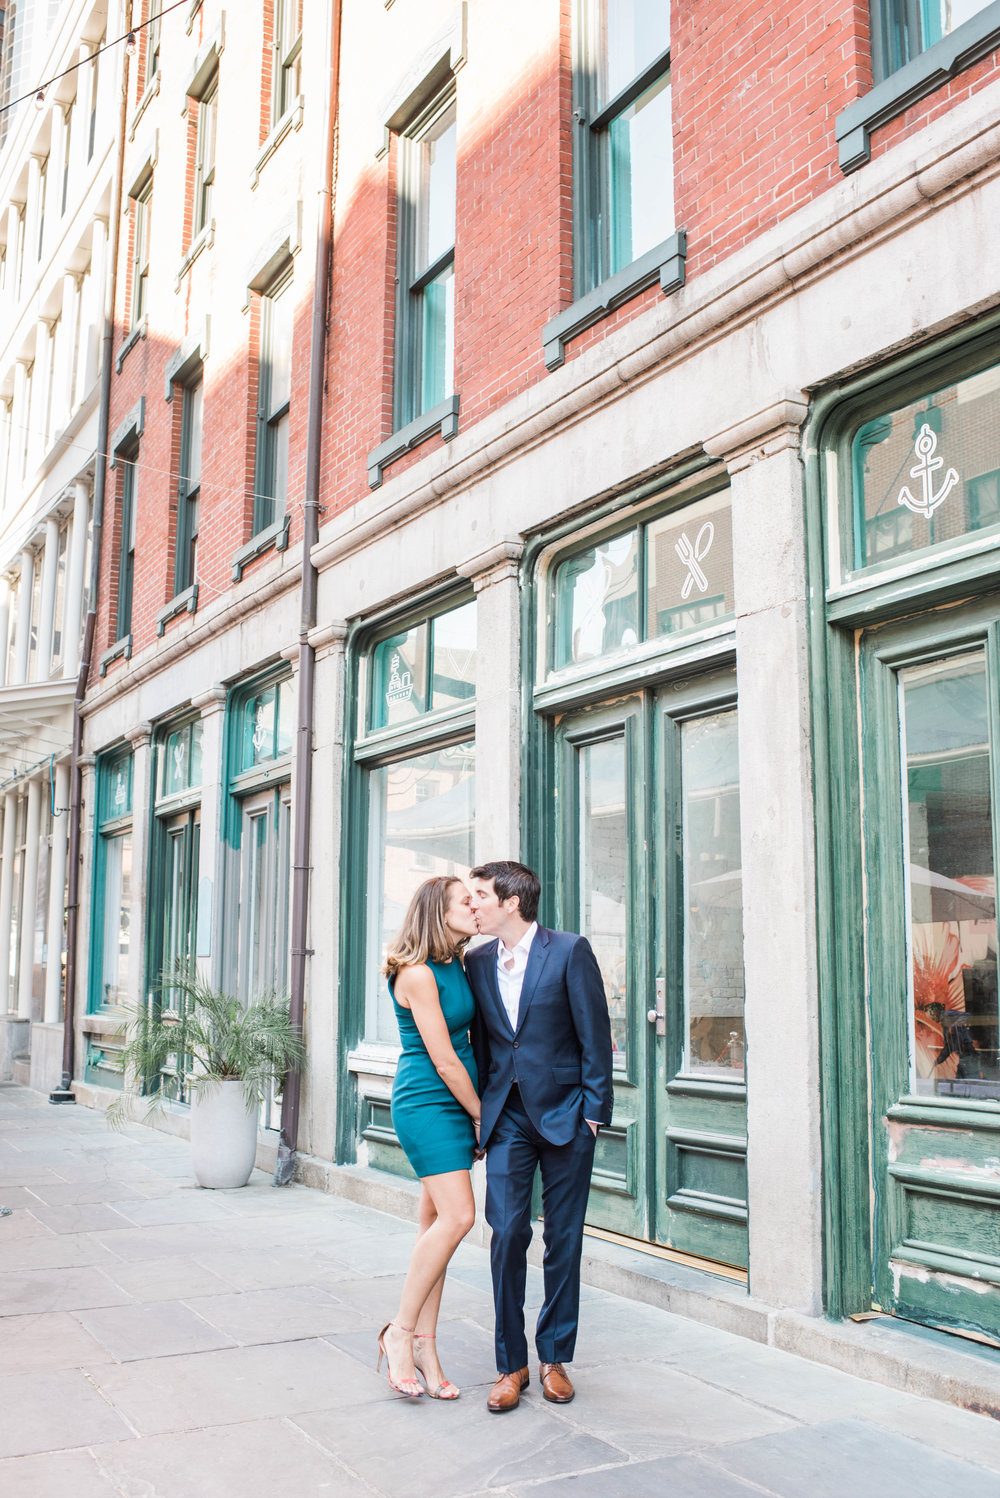 Walking in South street seaport, south street seaport, south street seaport engagement, Saturday morning, photographer's dream, engaged couple, pastel color, fiancee, kisses, kissing in the street